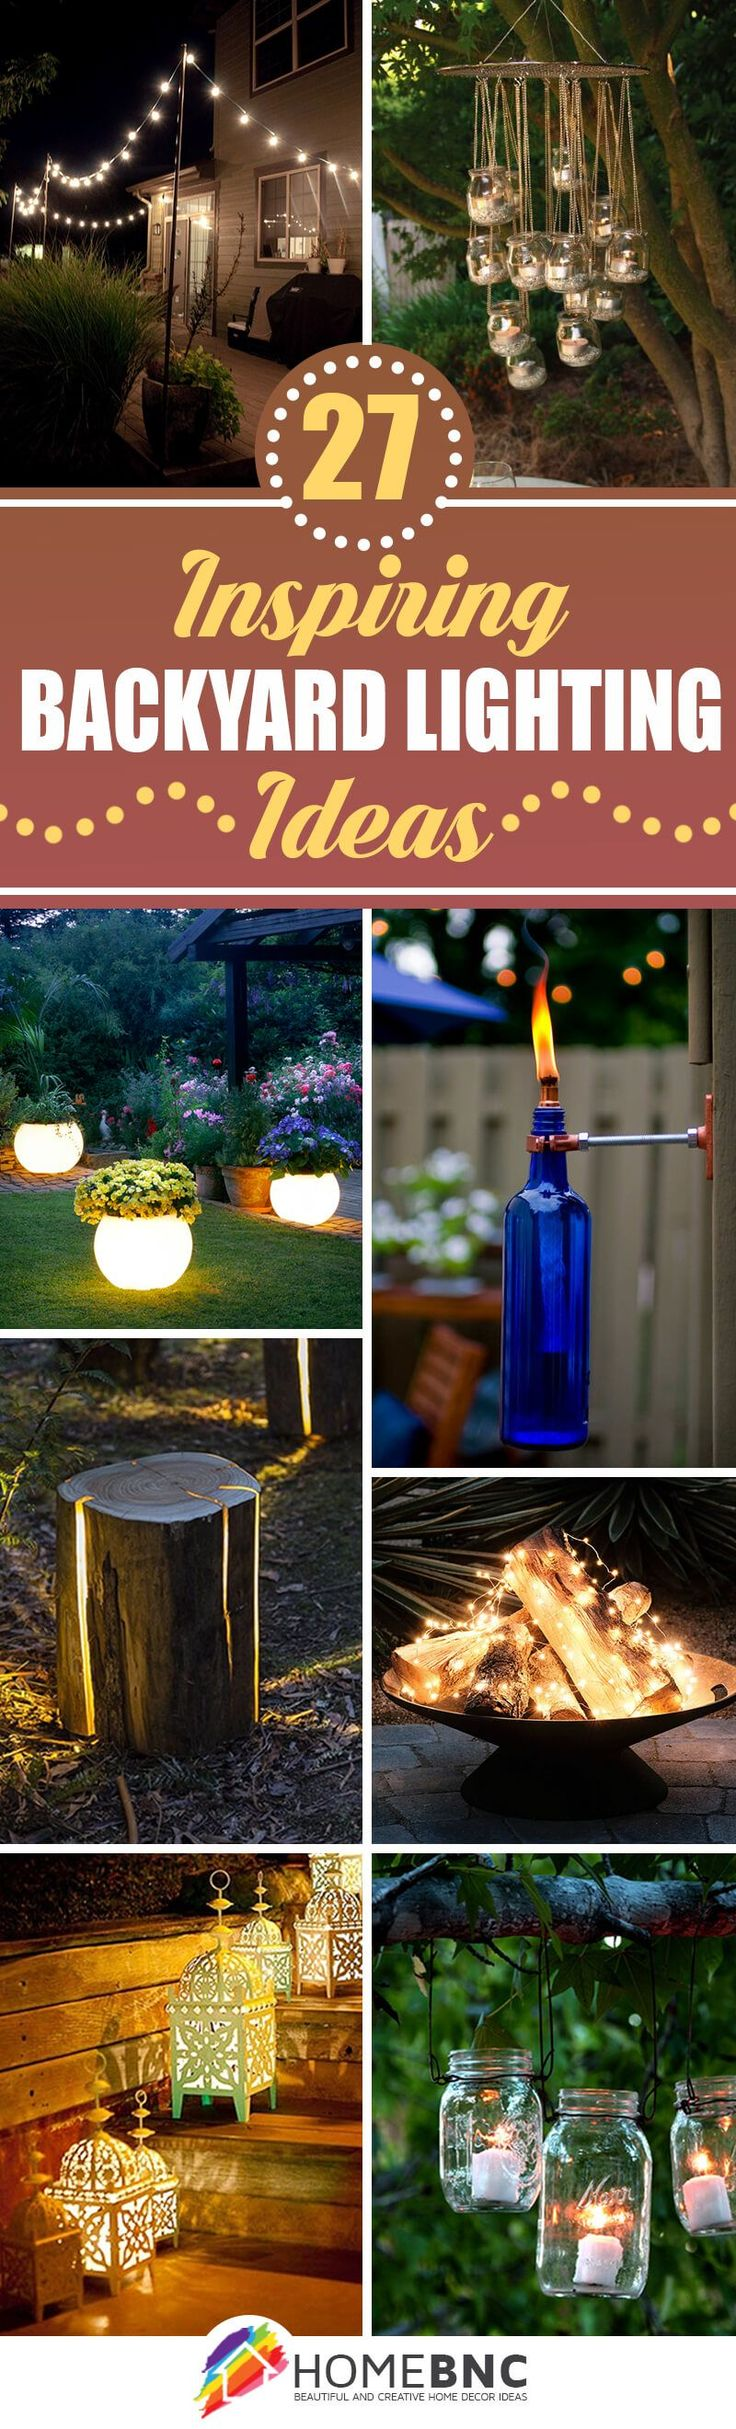 Backyard Lighting Ideas japanese garden lighting for the walkway along the side of the house 27 Pretty Backyard Lighting Ideas For Your Home